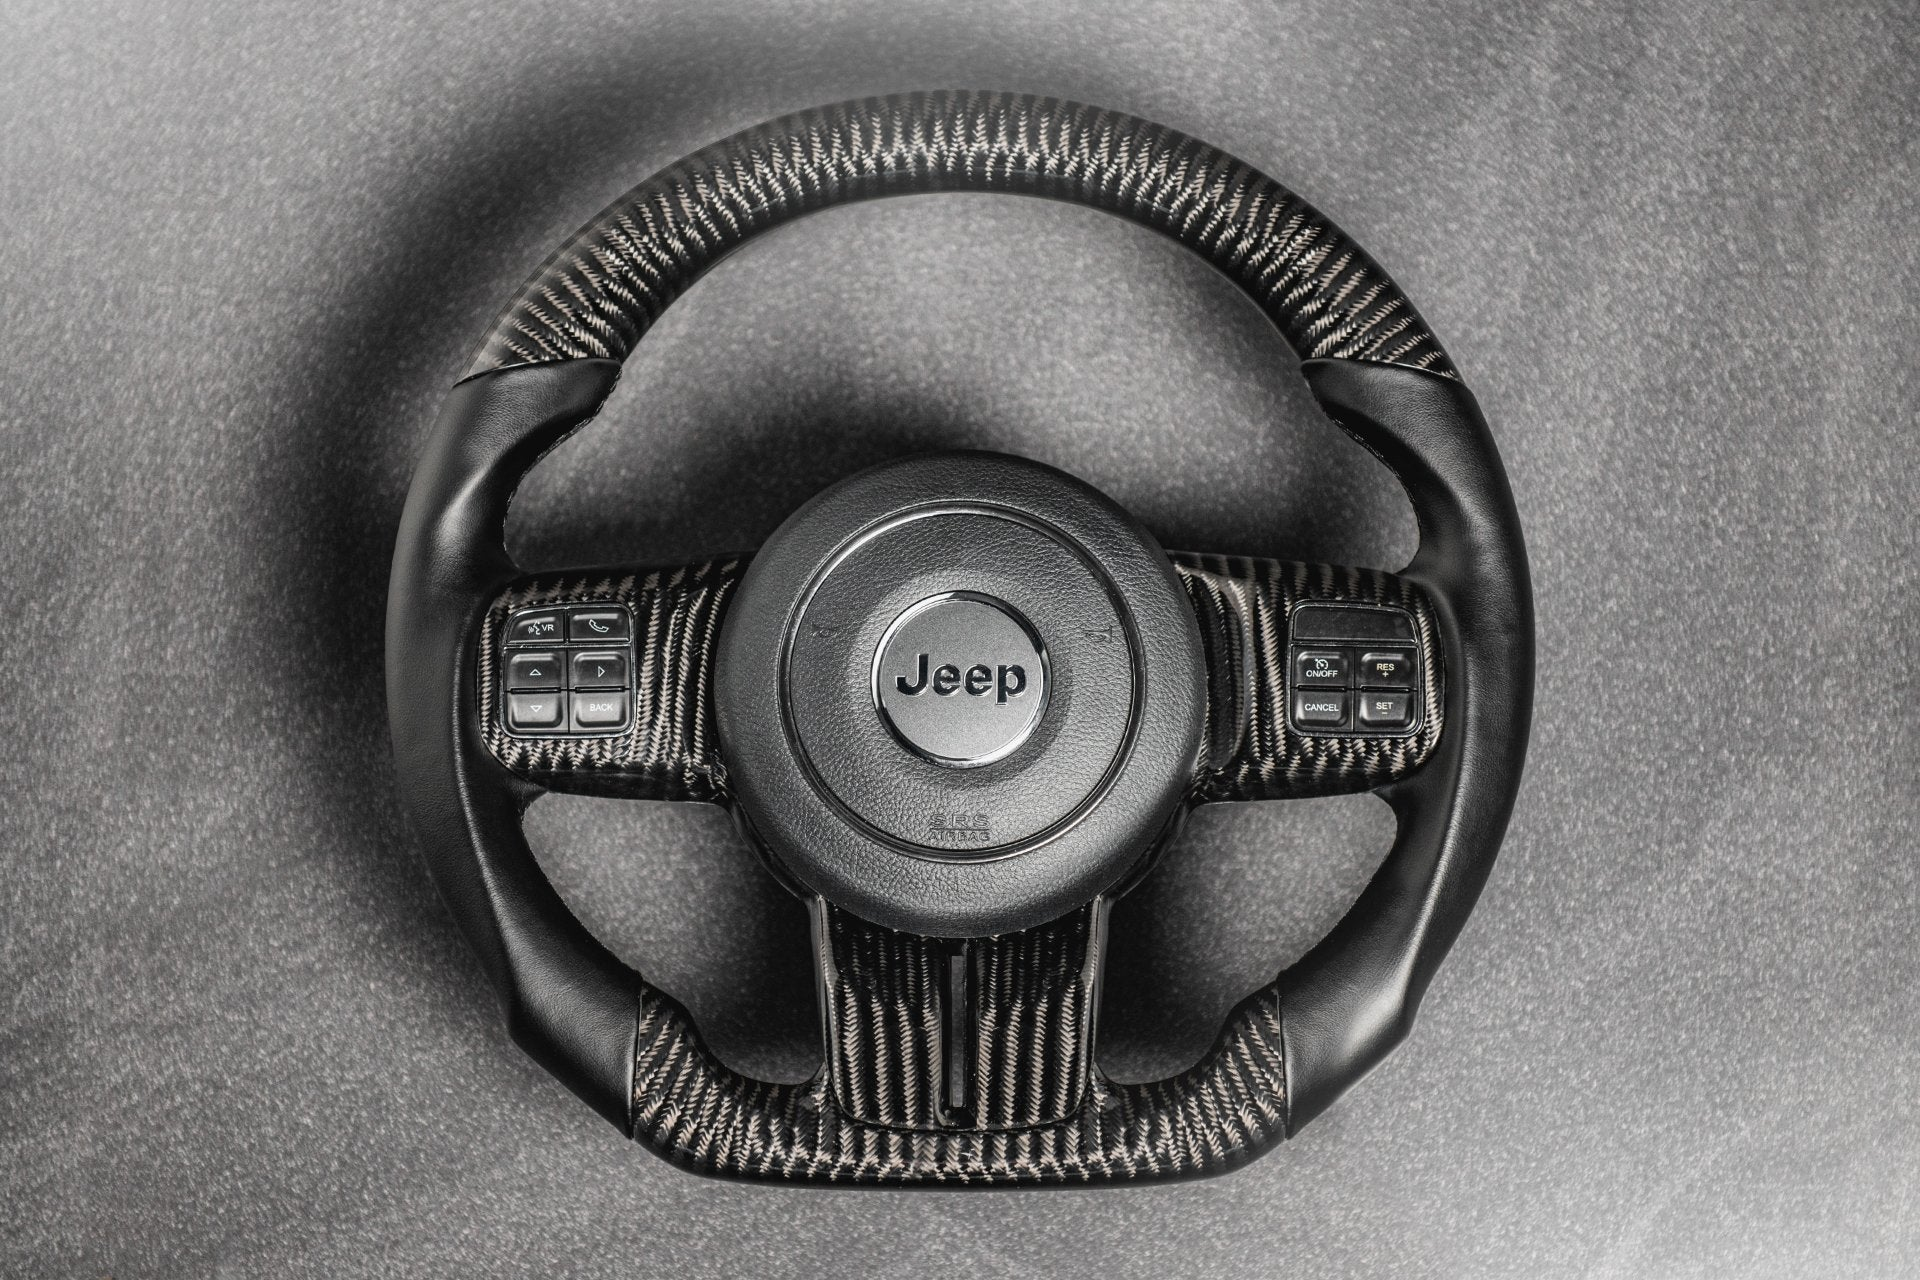 Jeep Wrangler JK (2007-2018) Exposed Carbon Steering Wheel